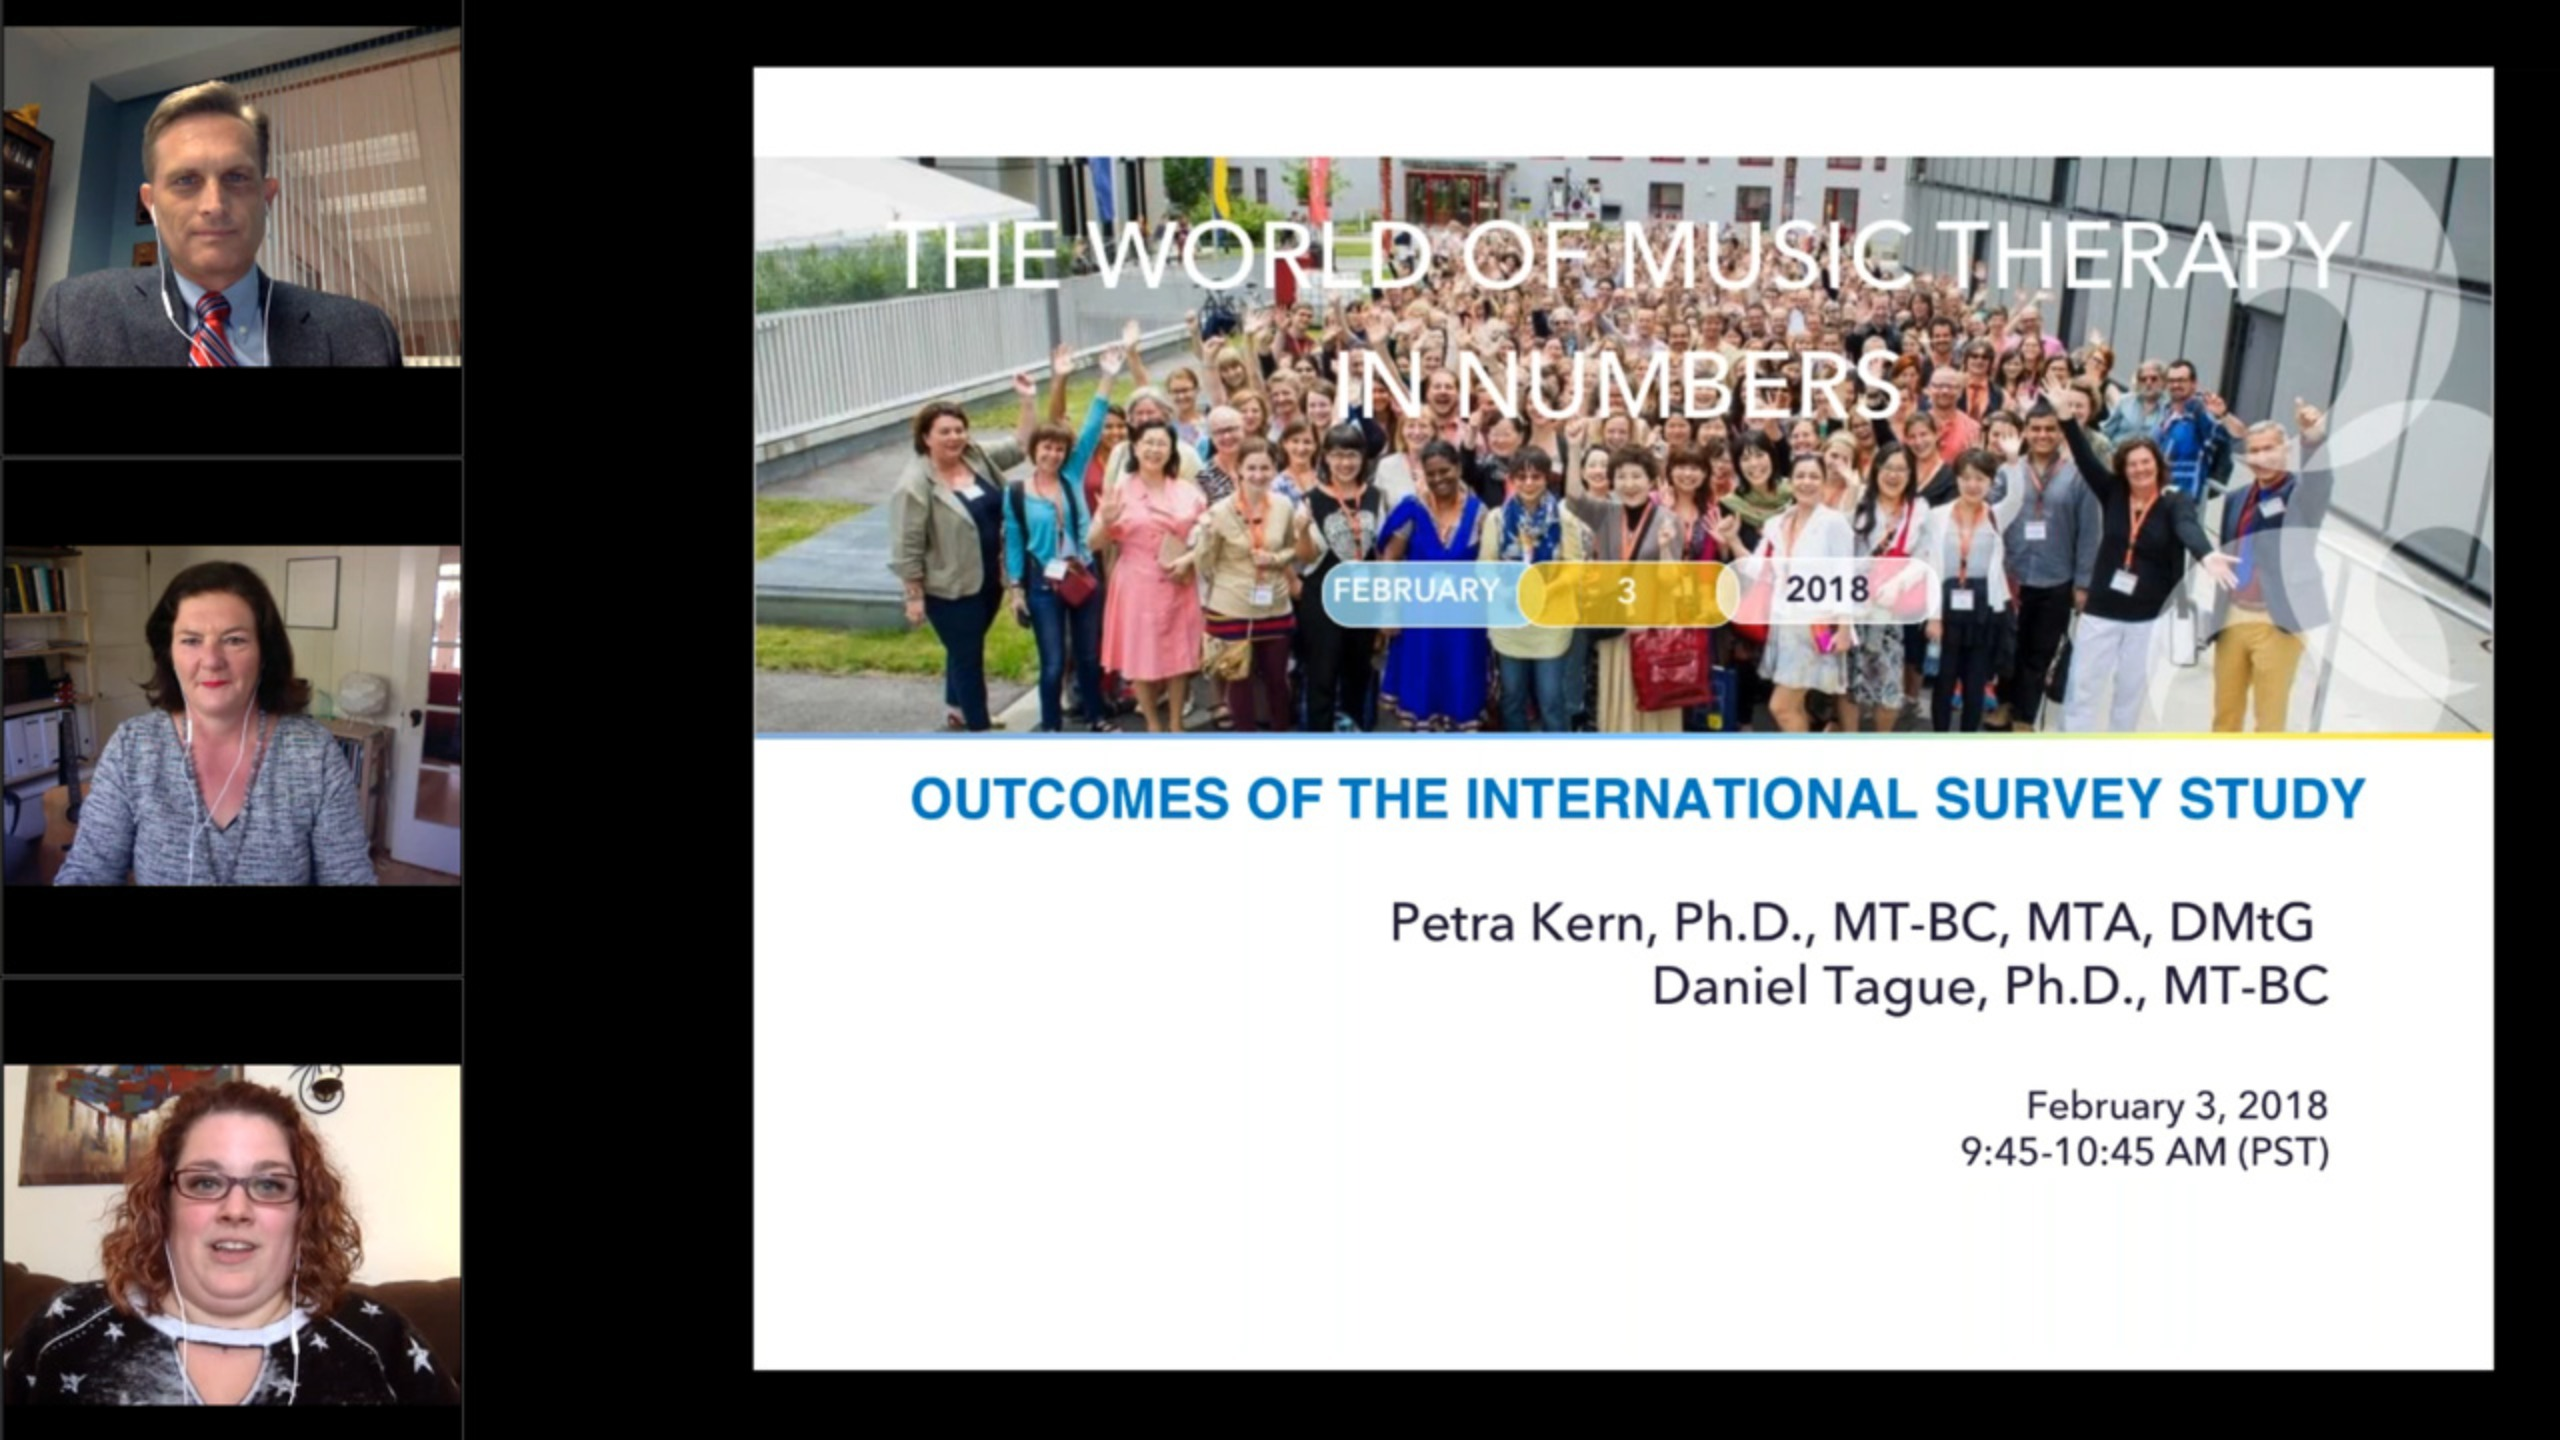 The World of Music Therapy in Numbers: Outcomes of the International Survey Study